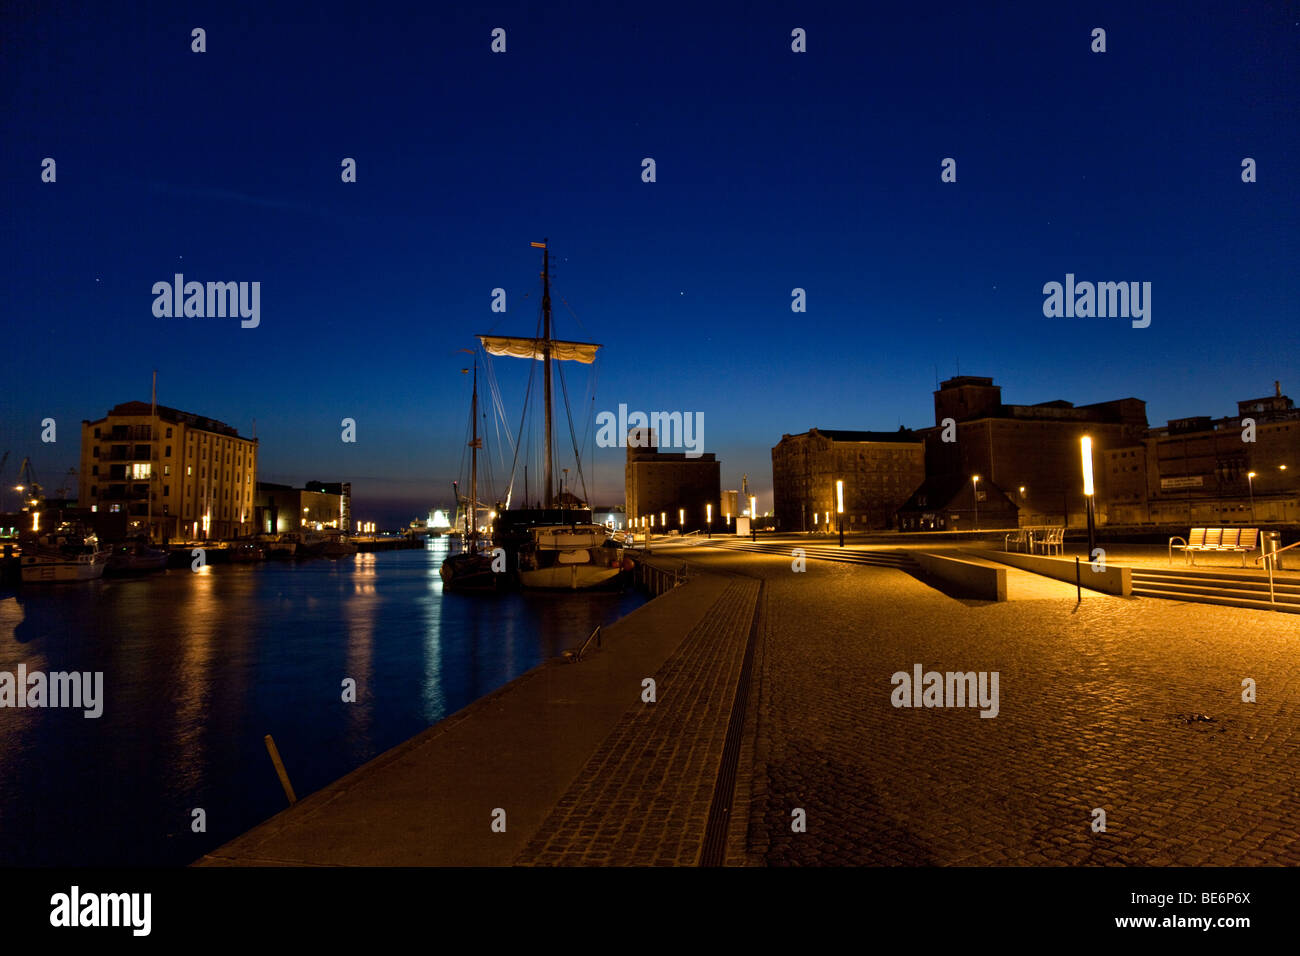 Old harbor of Wismar, Germany, with sailing boats and storehouse by night - Stock Image